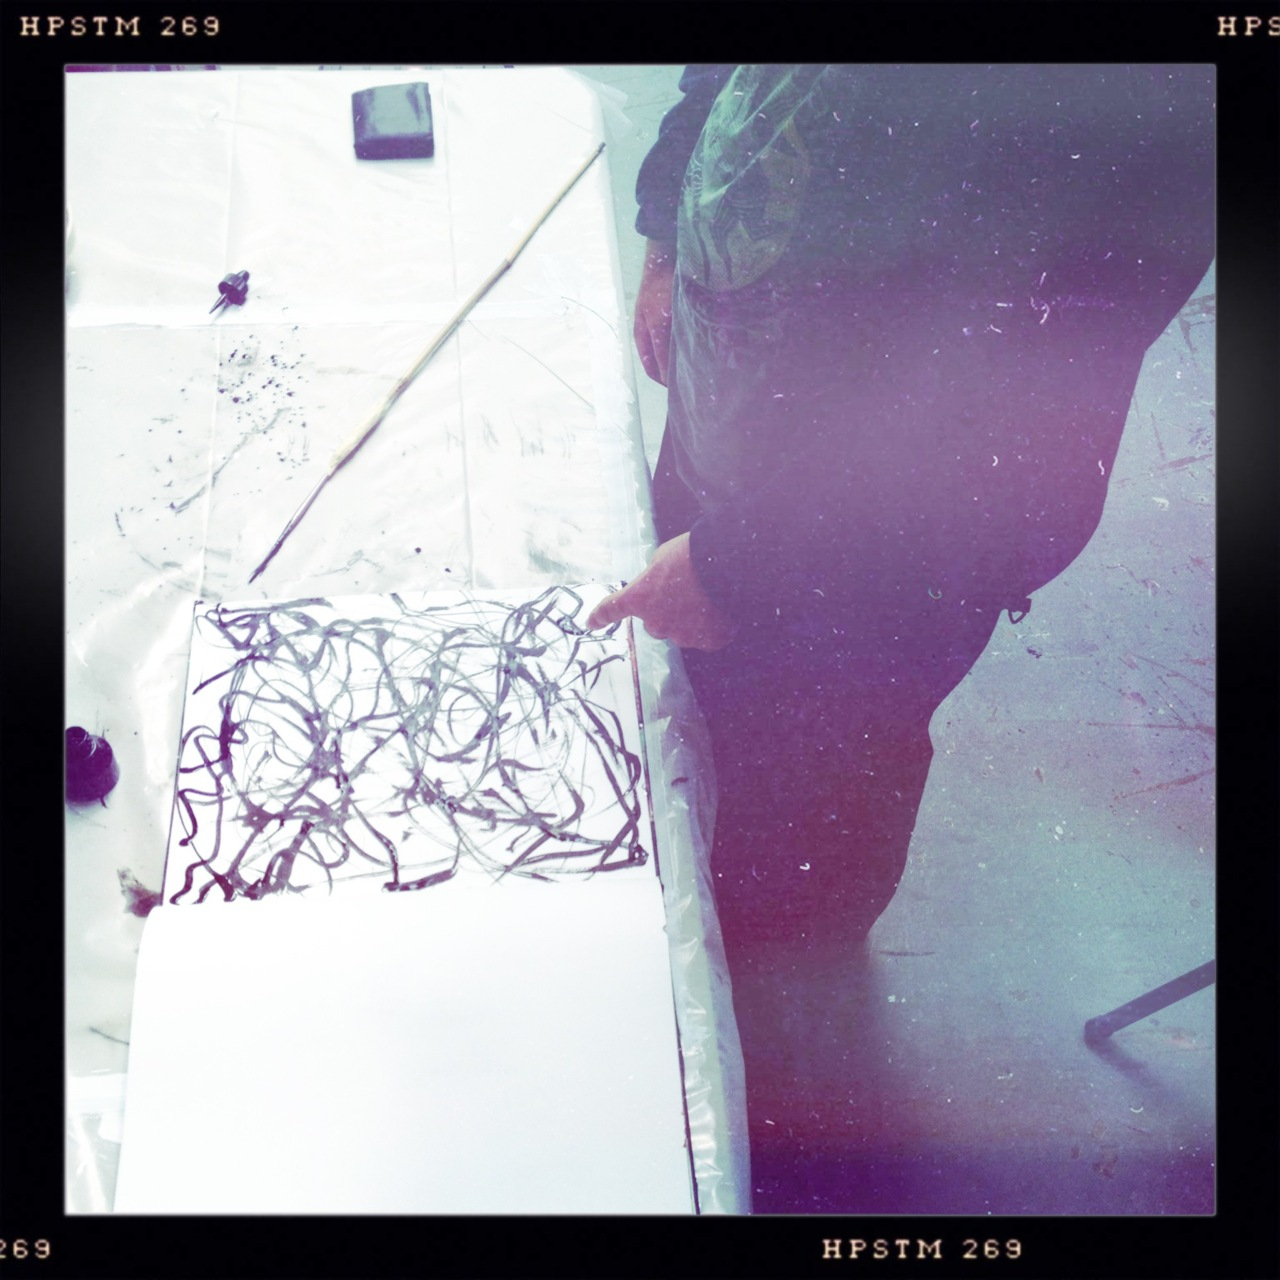 Zach working on his Expression of Line… Bettie XL Lens, Pistil Film, No Flash, Taken with Hipstamatic